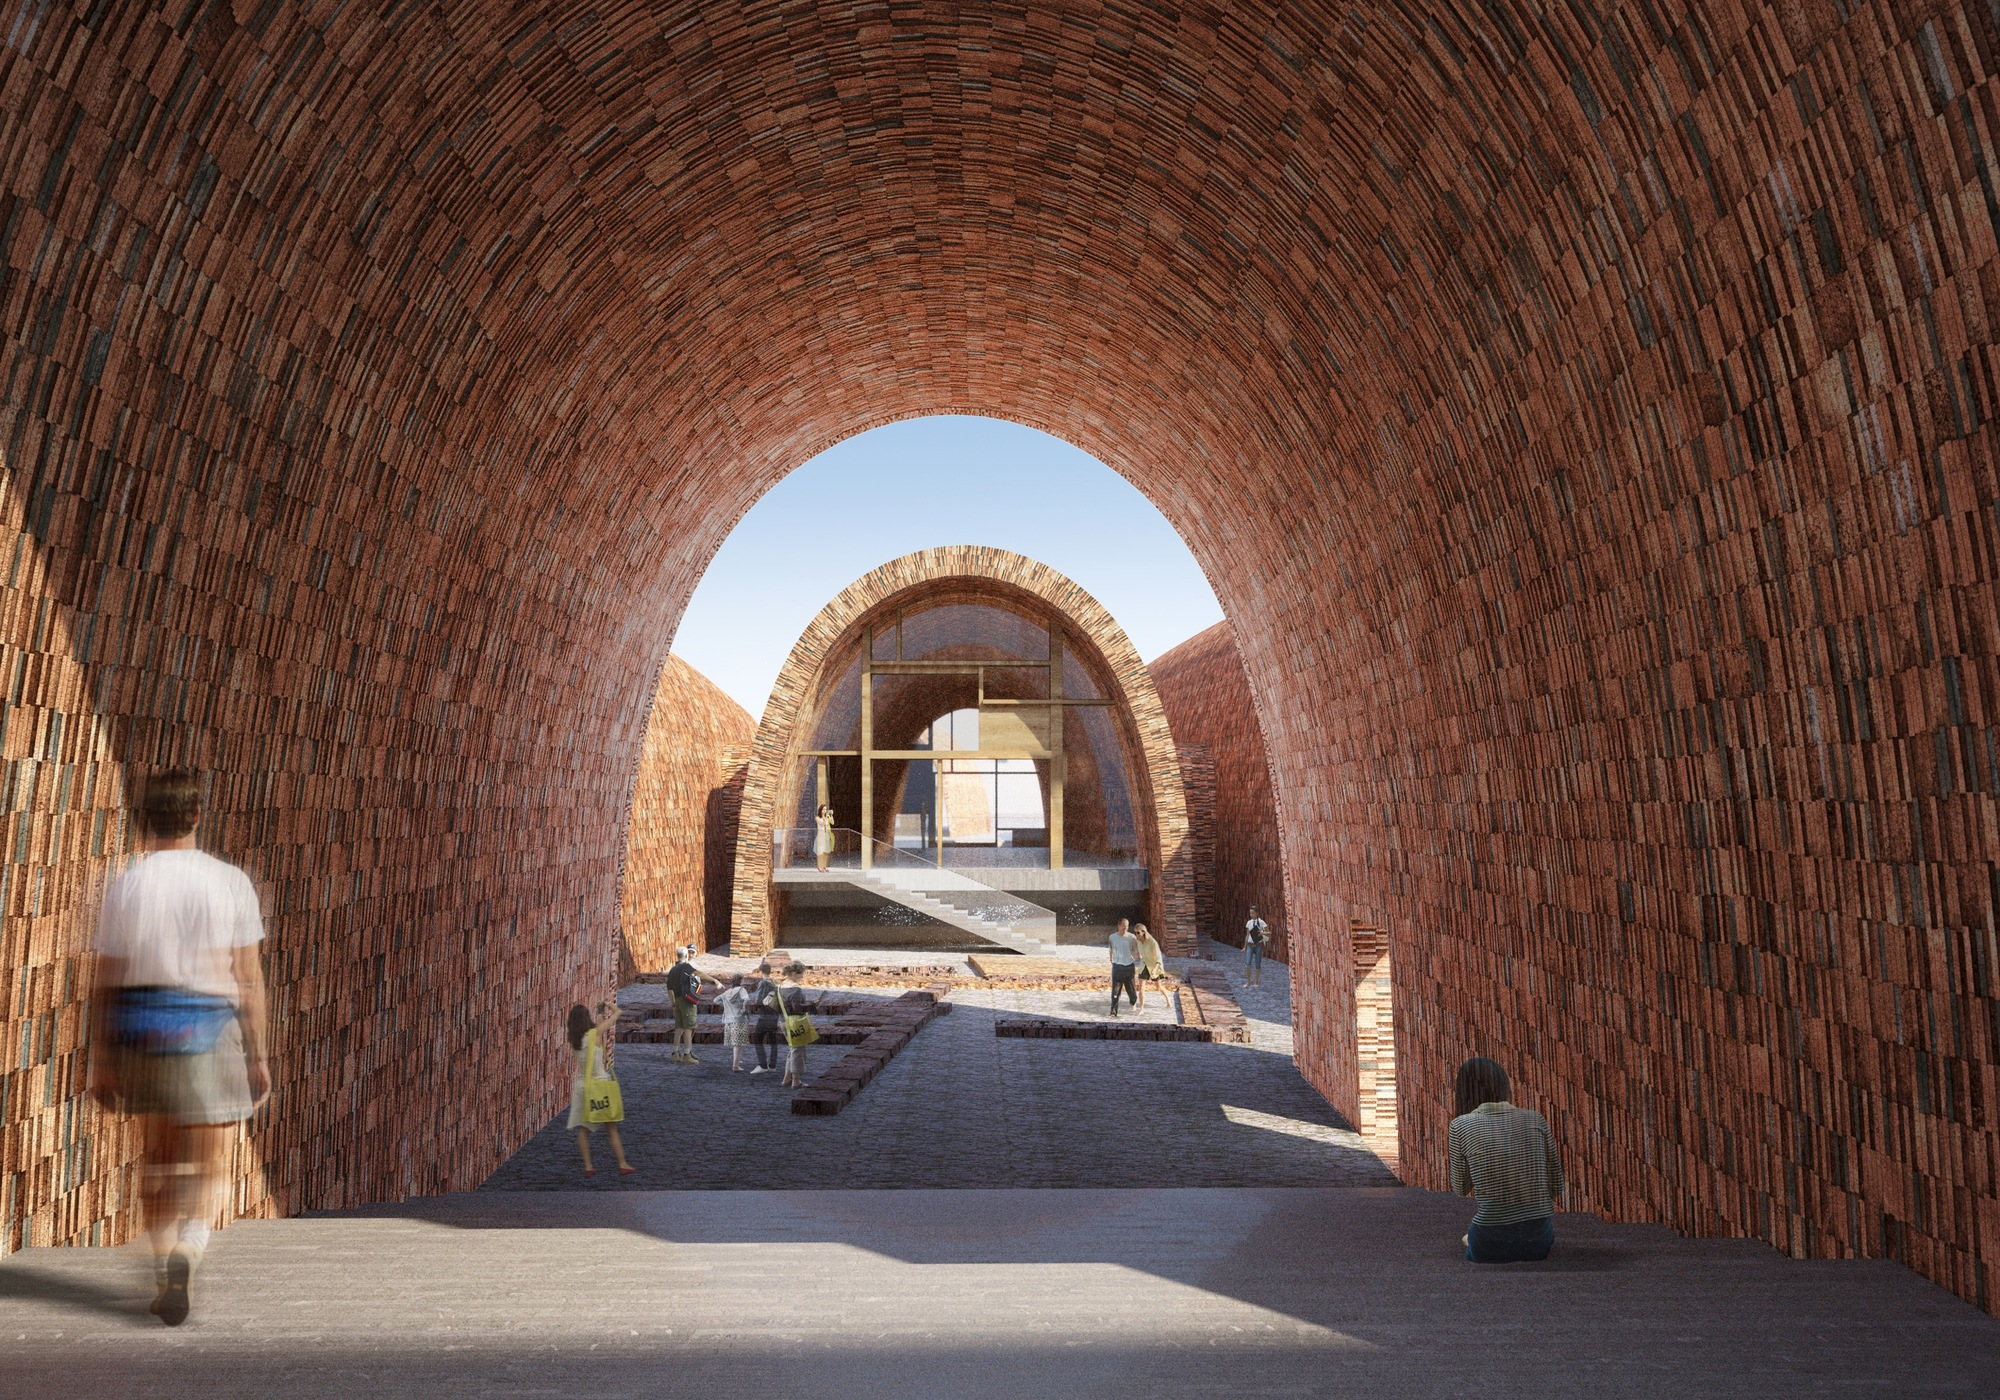 Studio Pei Zhu S Vaulted Museum Design Takes Inspiration